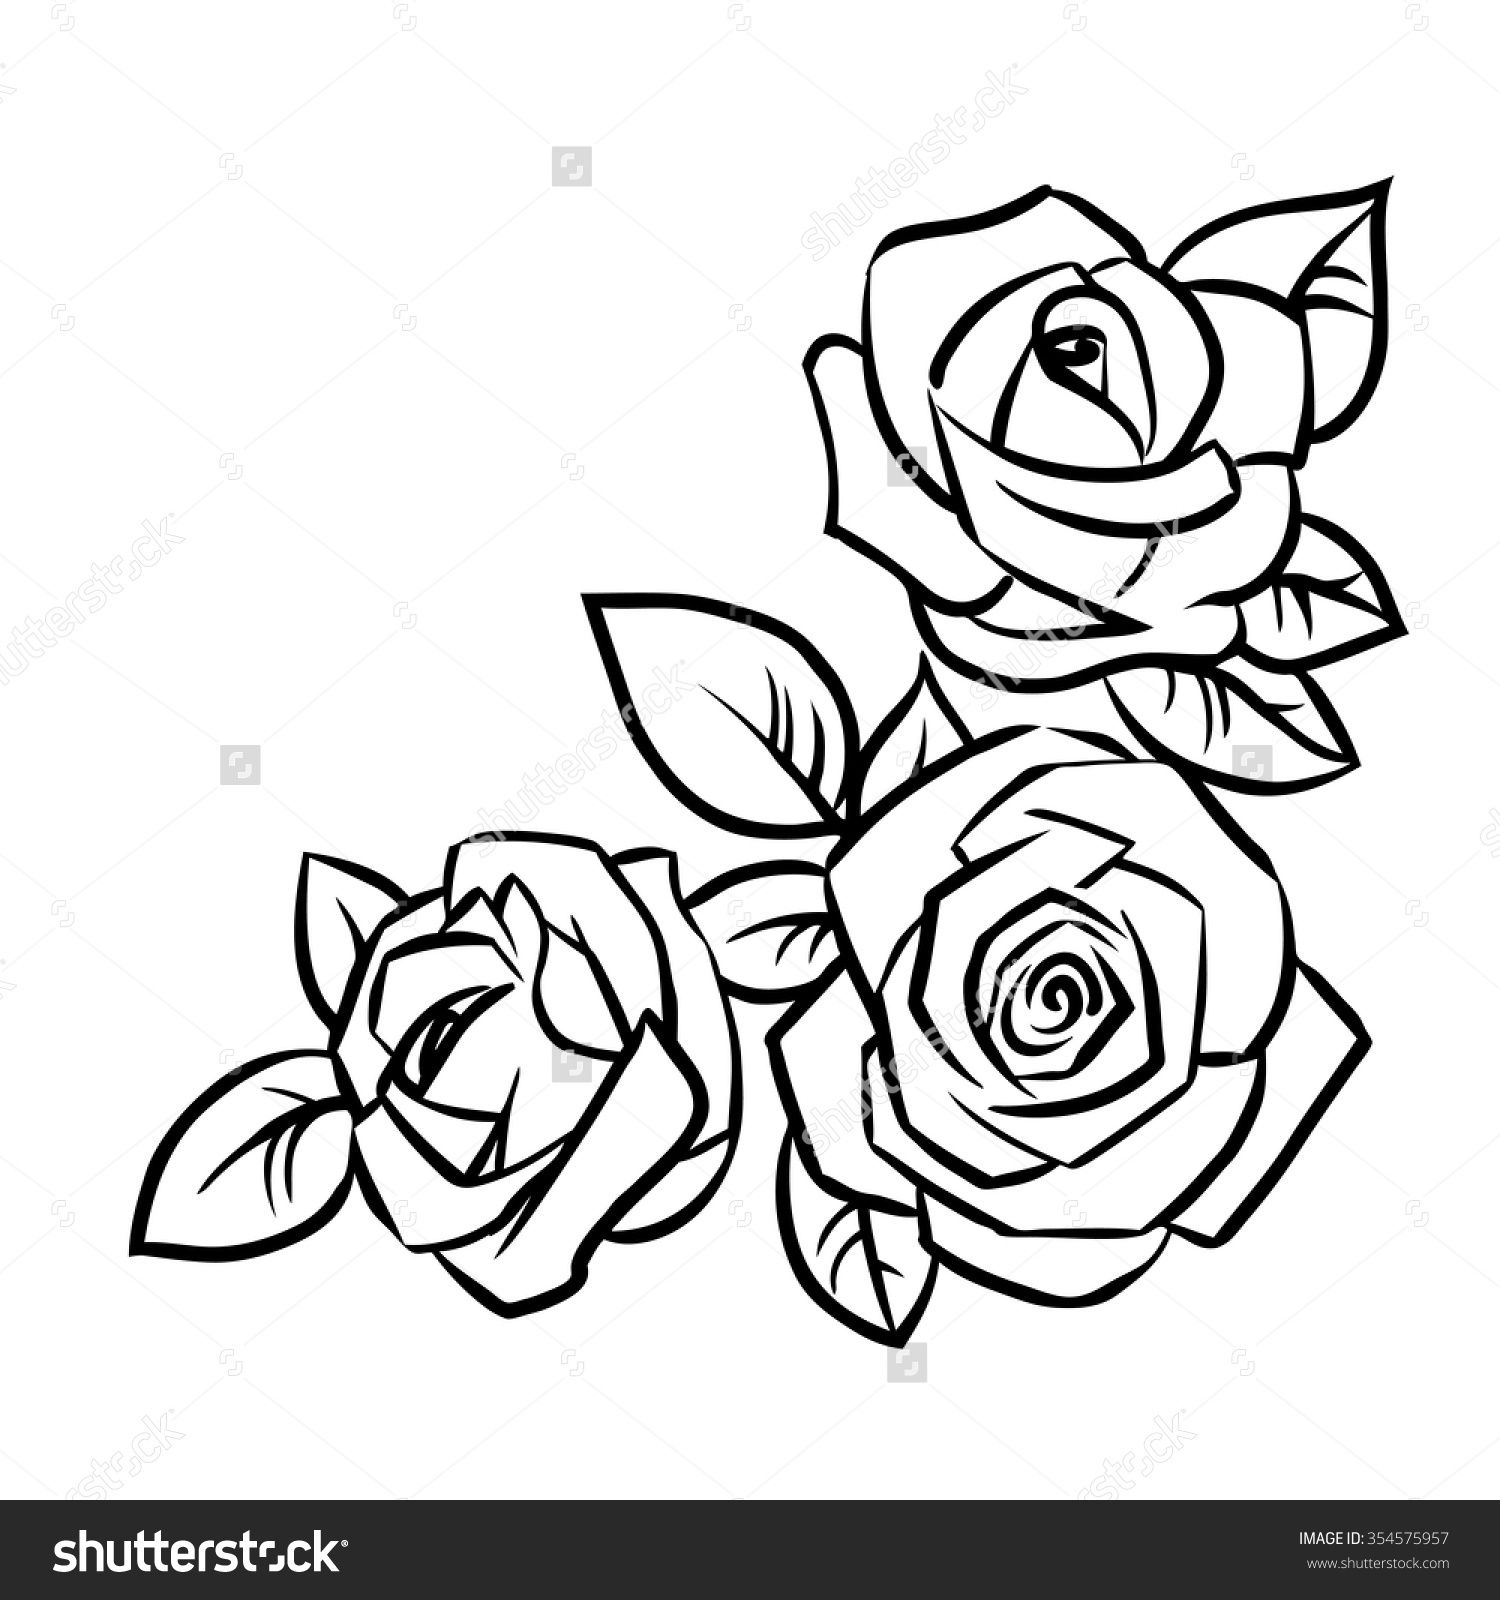 Simple Rose Outline Drawing Google Search Rose Outline Drawing Flower Drawing Images Outline Drawings